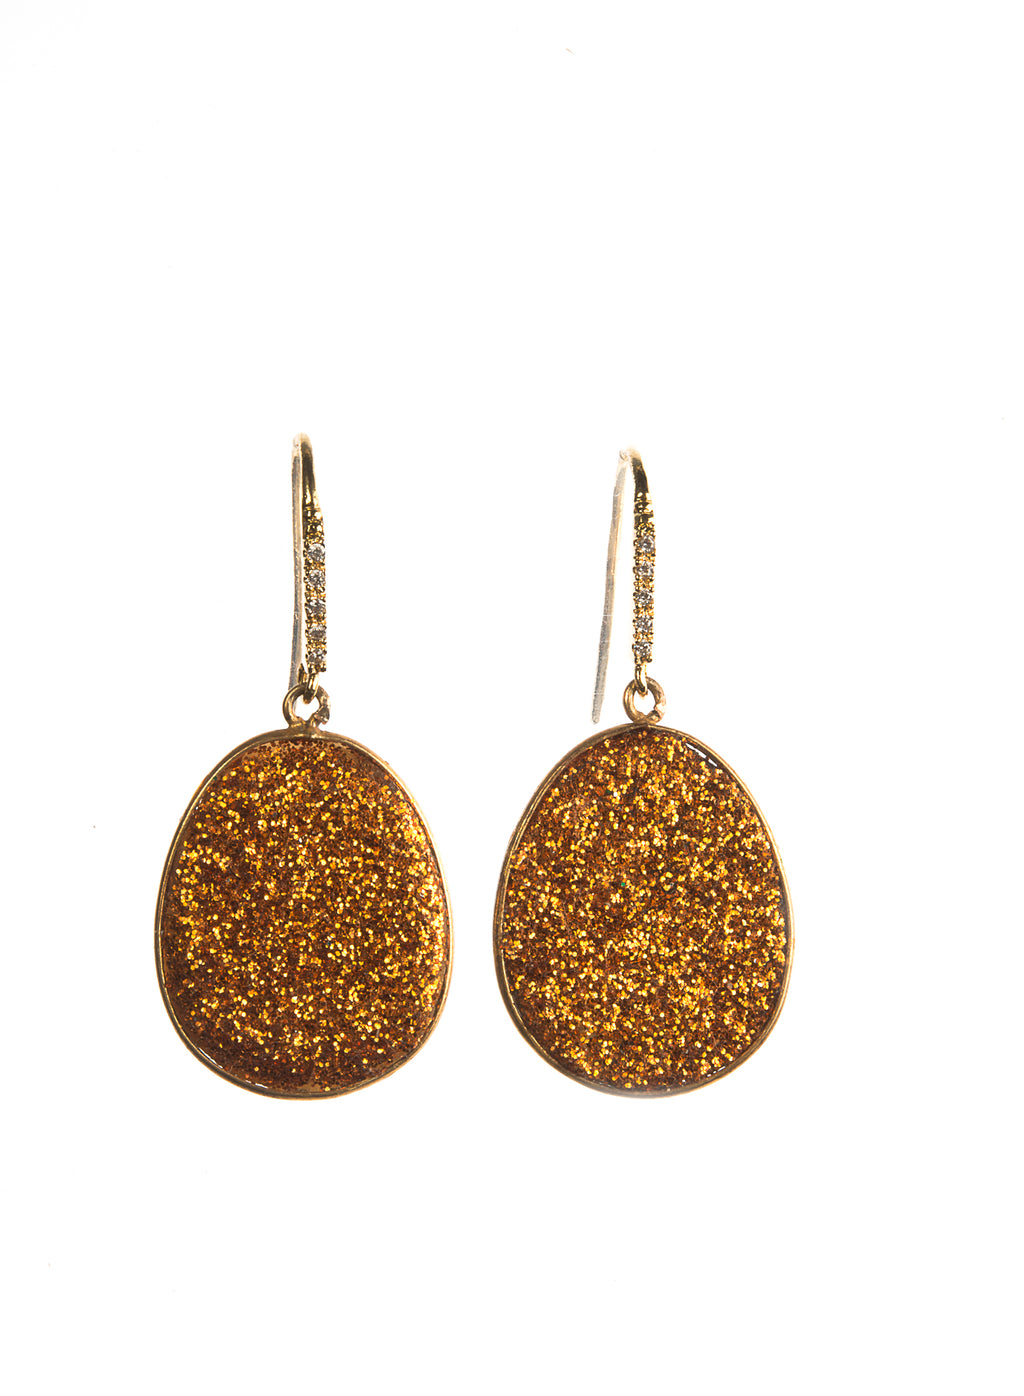 DRUZY EARRINGS STEFFY - Ava Cadiz